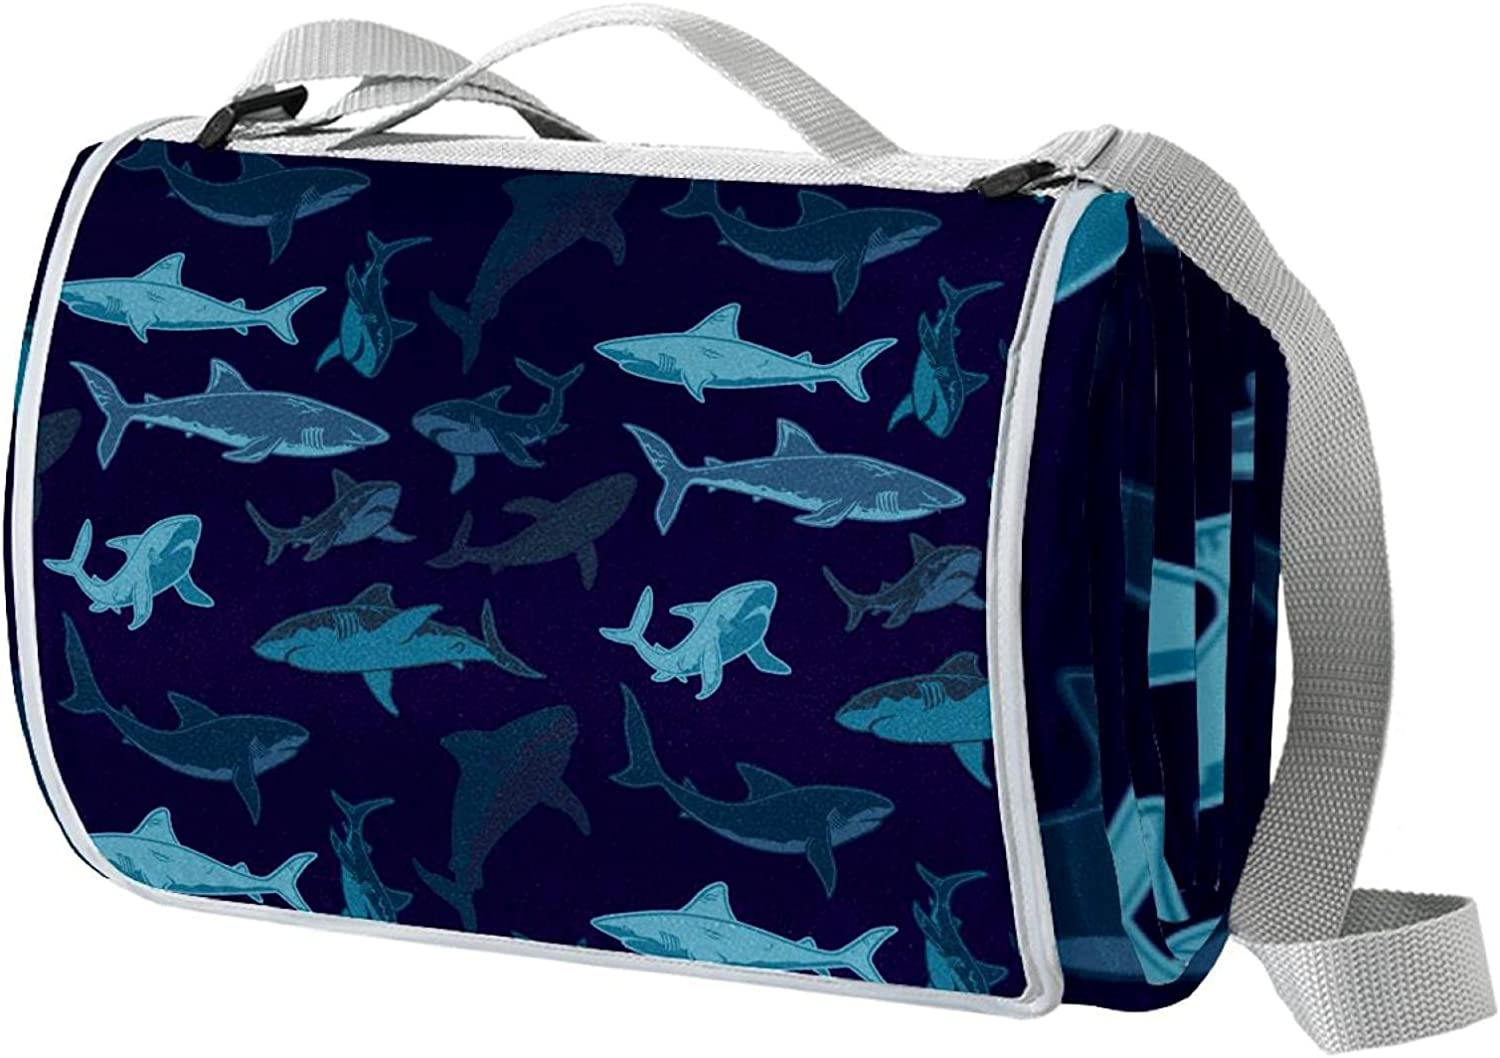 Navy Blue Sea Shark Challenge the lowest price Pattern Swimming Waterproof Blanket O cheap Picnic